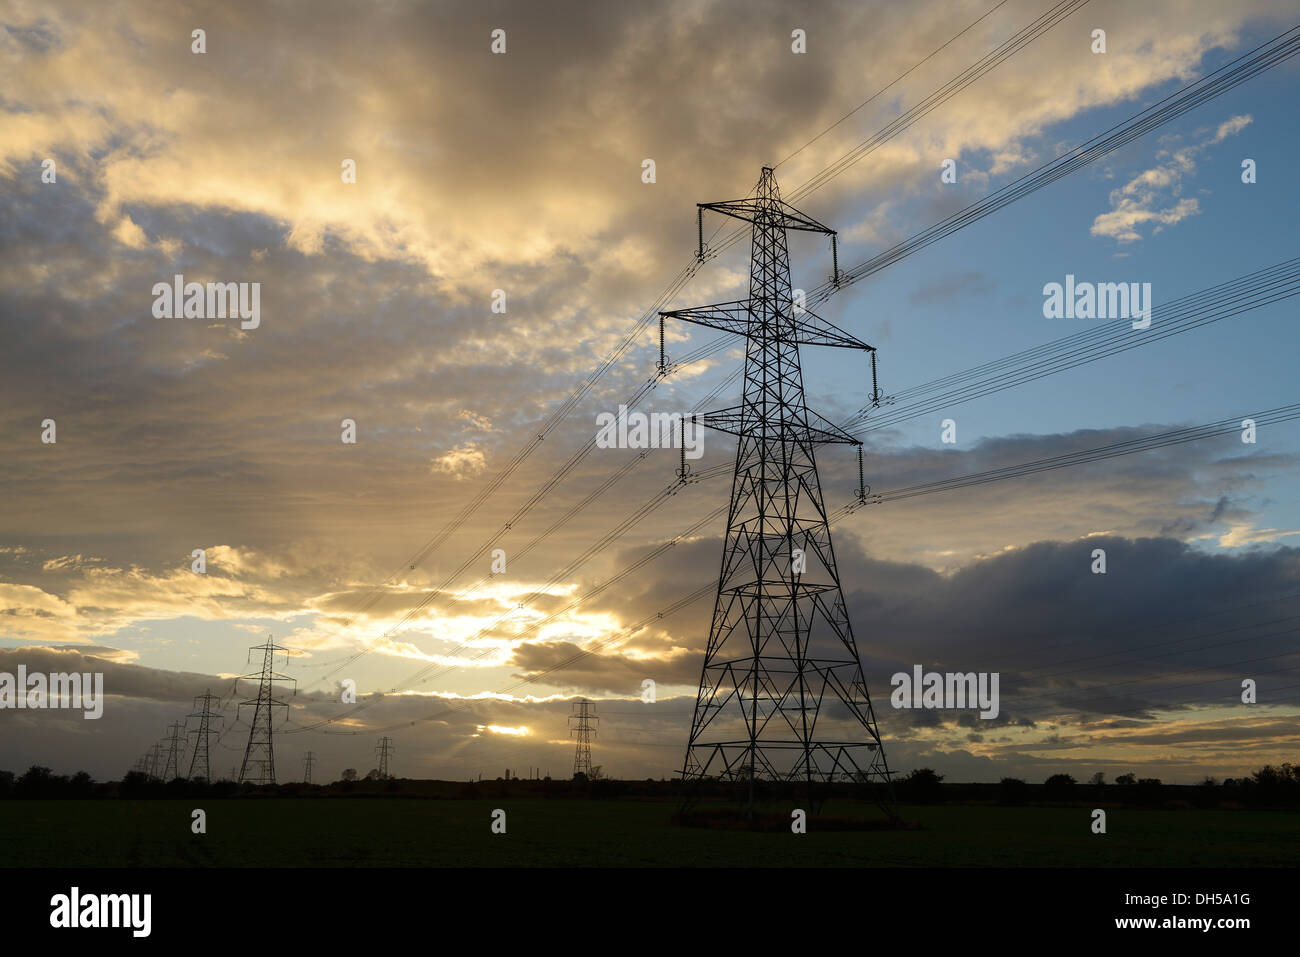 Evening sun setting behind electricity pylons UK - Stock Image